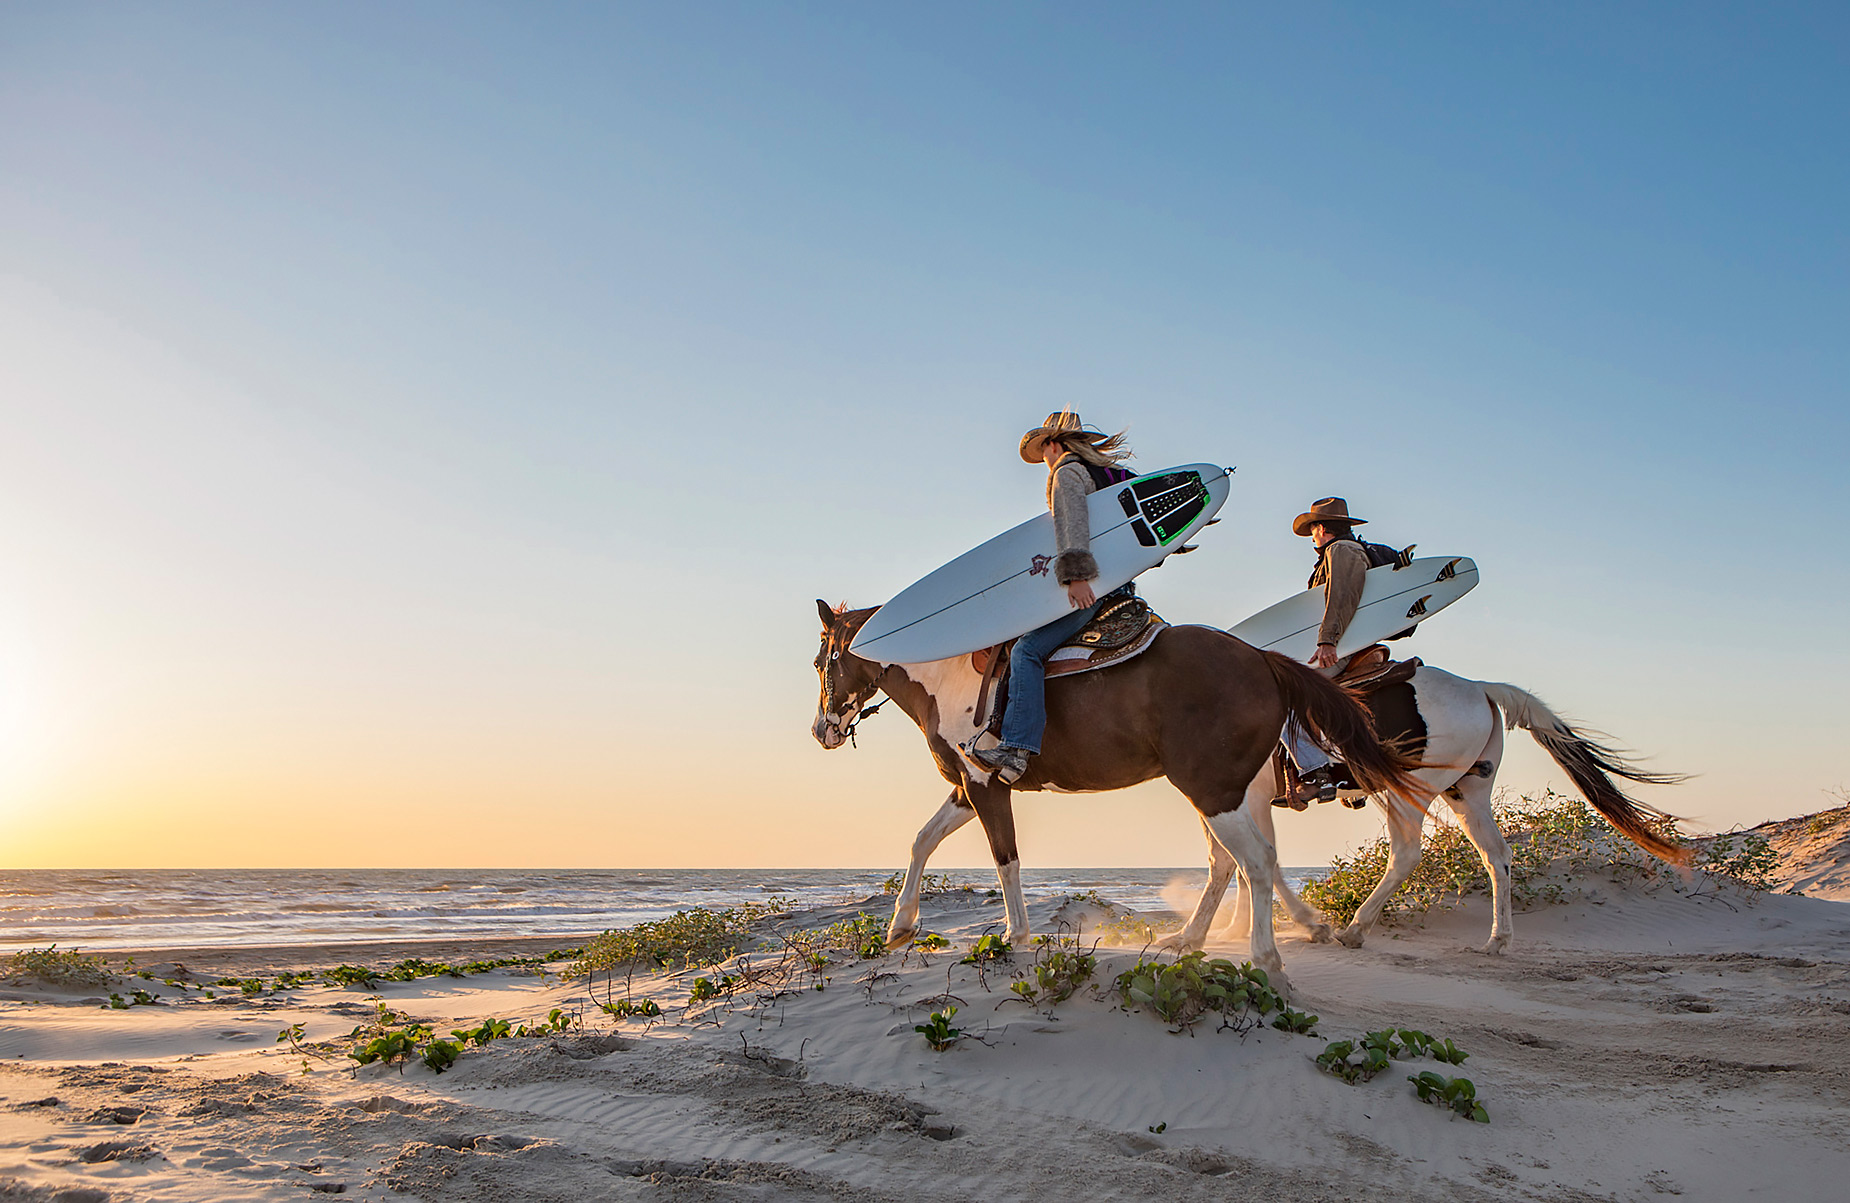 Texas surfers on horseback in the dunes at sunrise